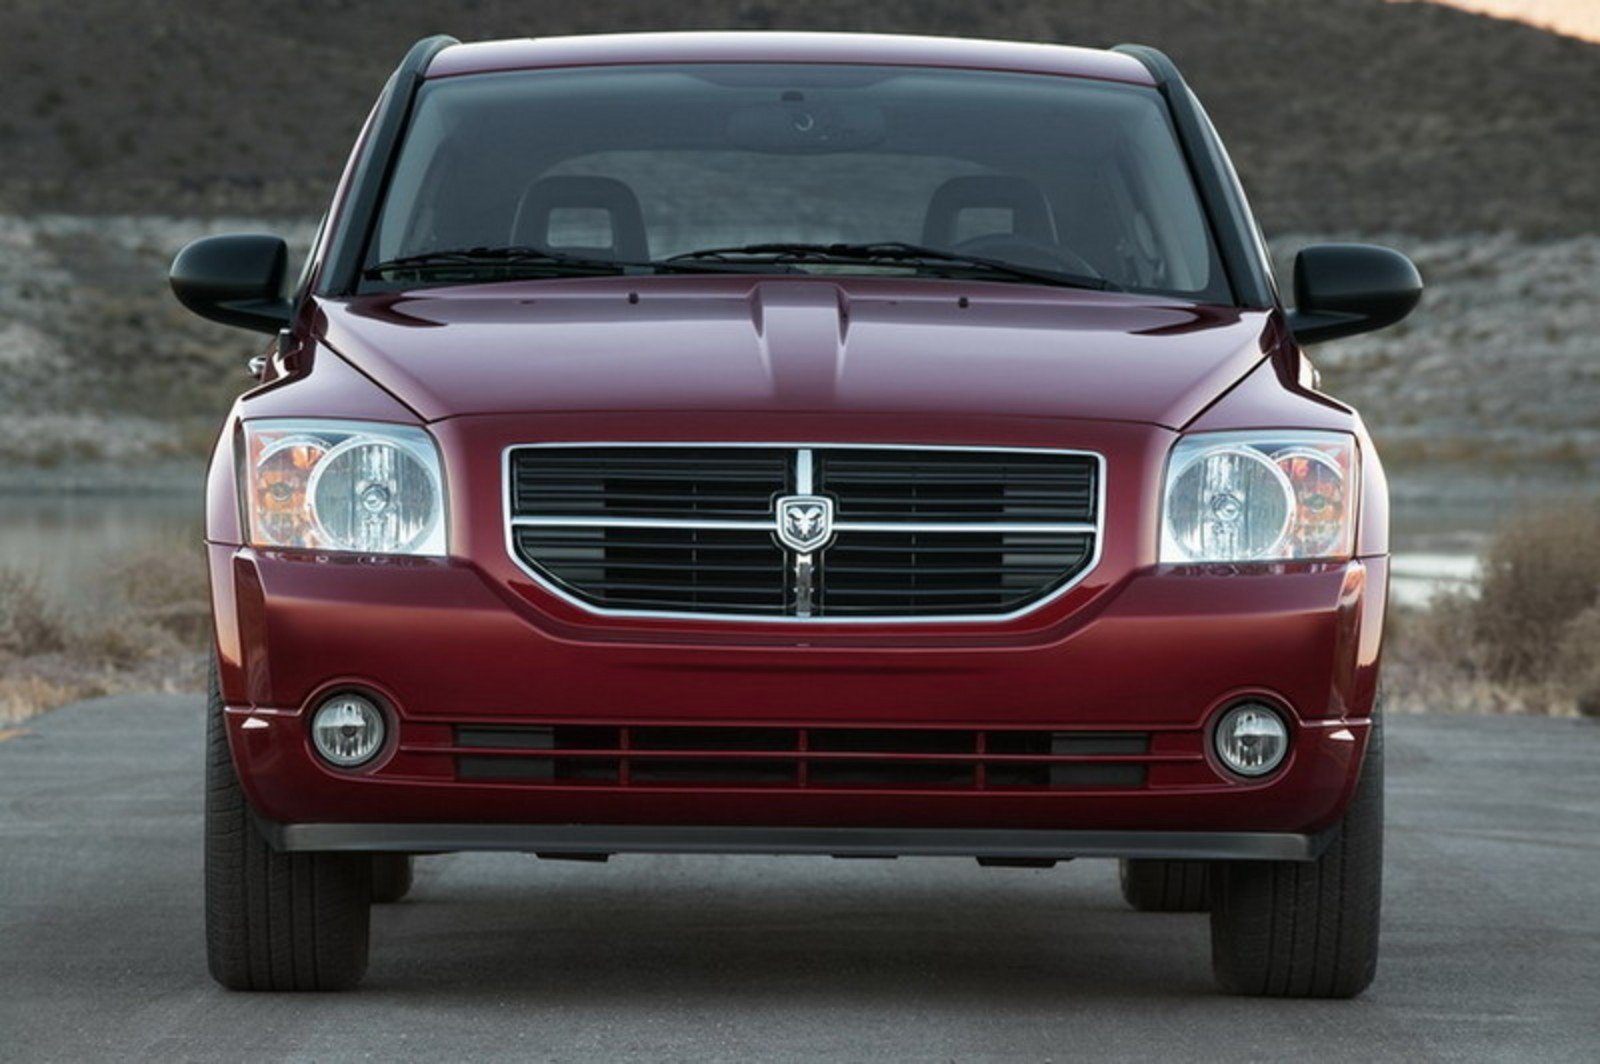 2007 dodge caliber review gallery top speed. Black Bedroom Furniture Sets. Home Design Ideas